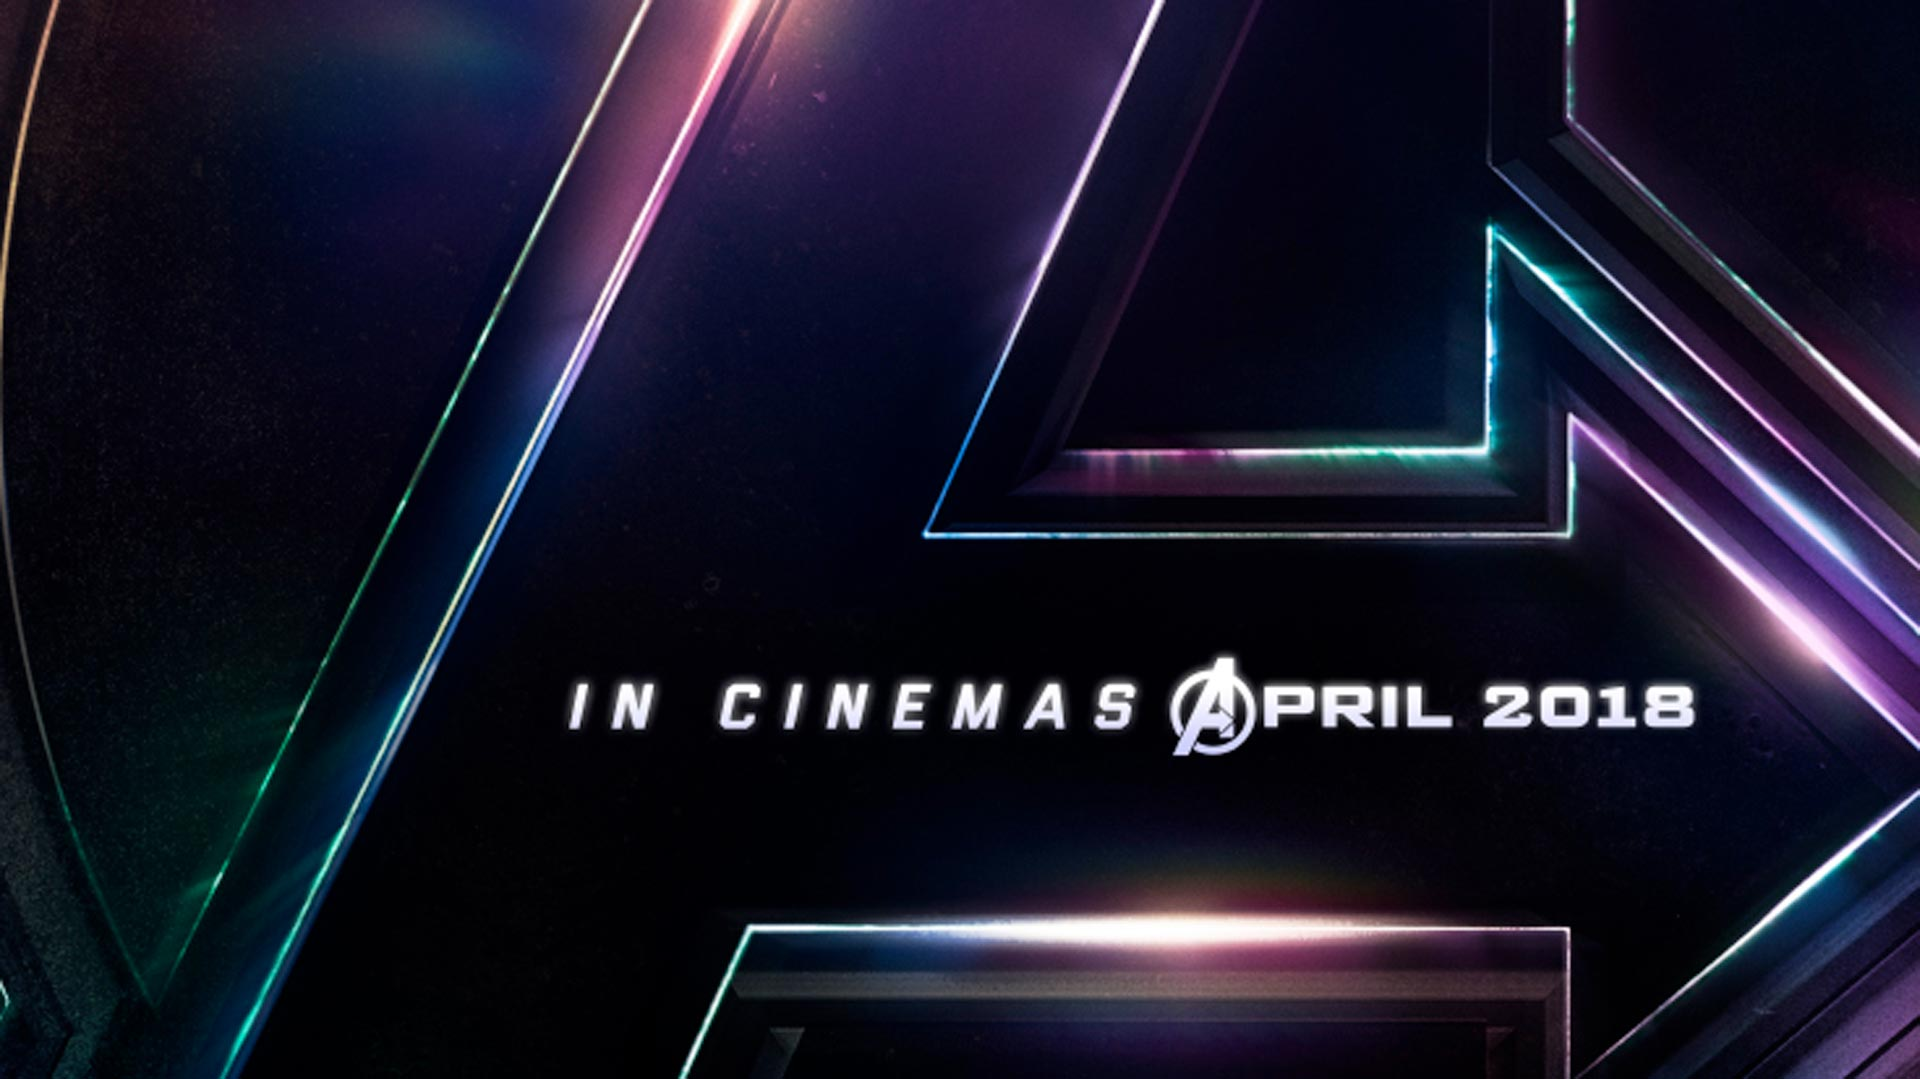 first trailer and poster for avengers: infinity war revealed